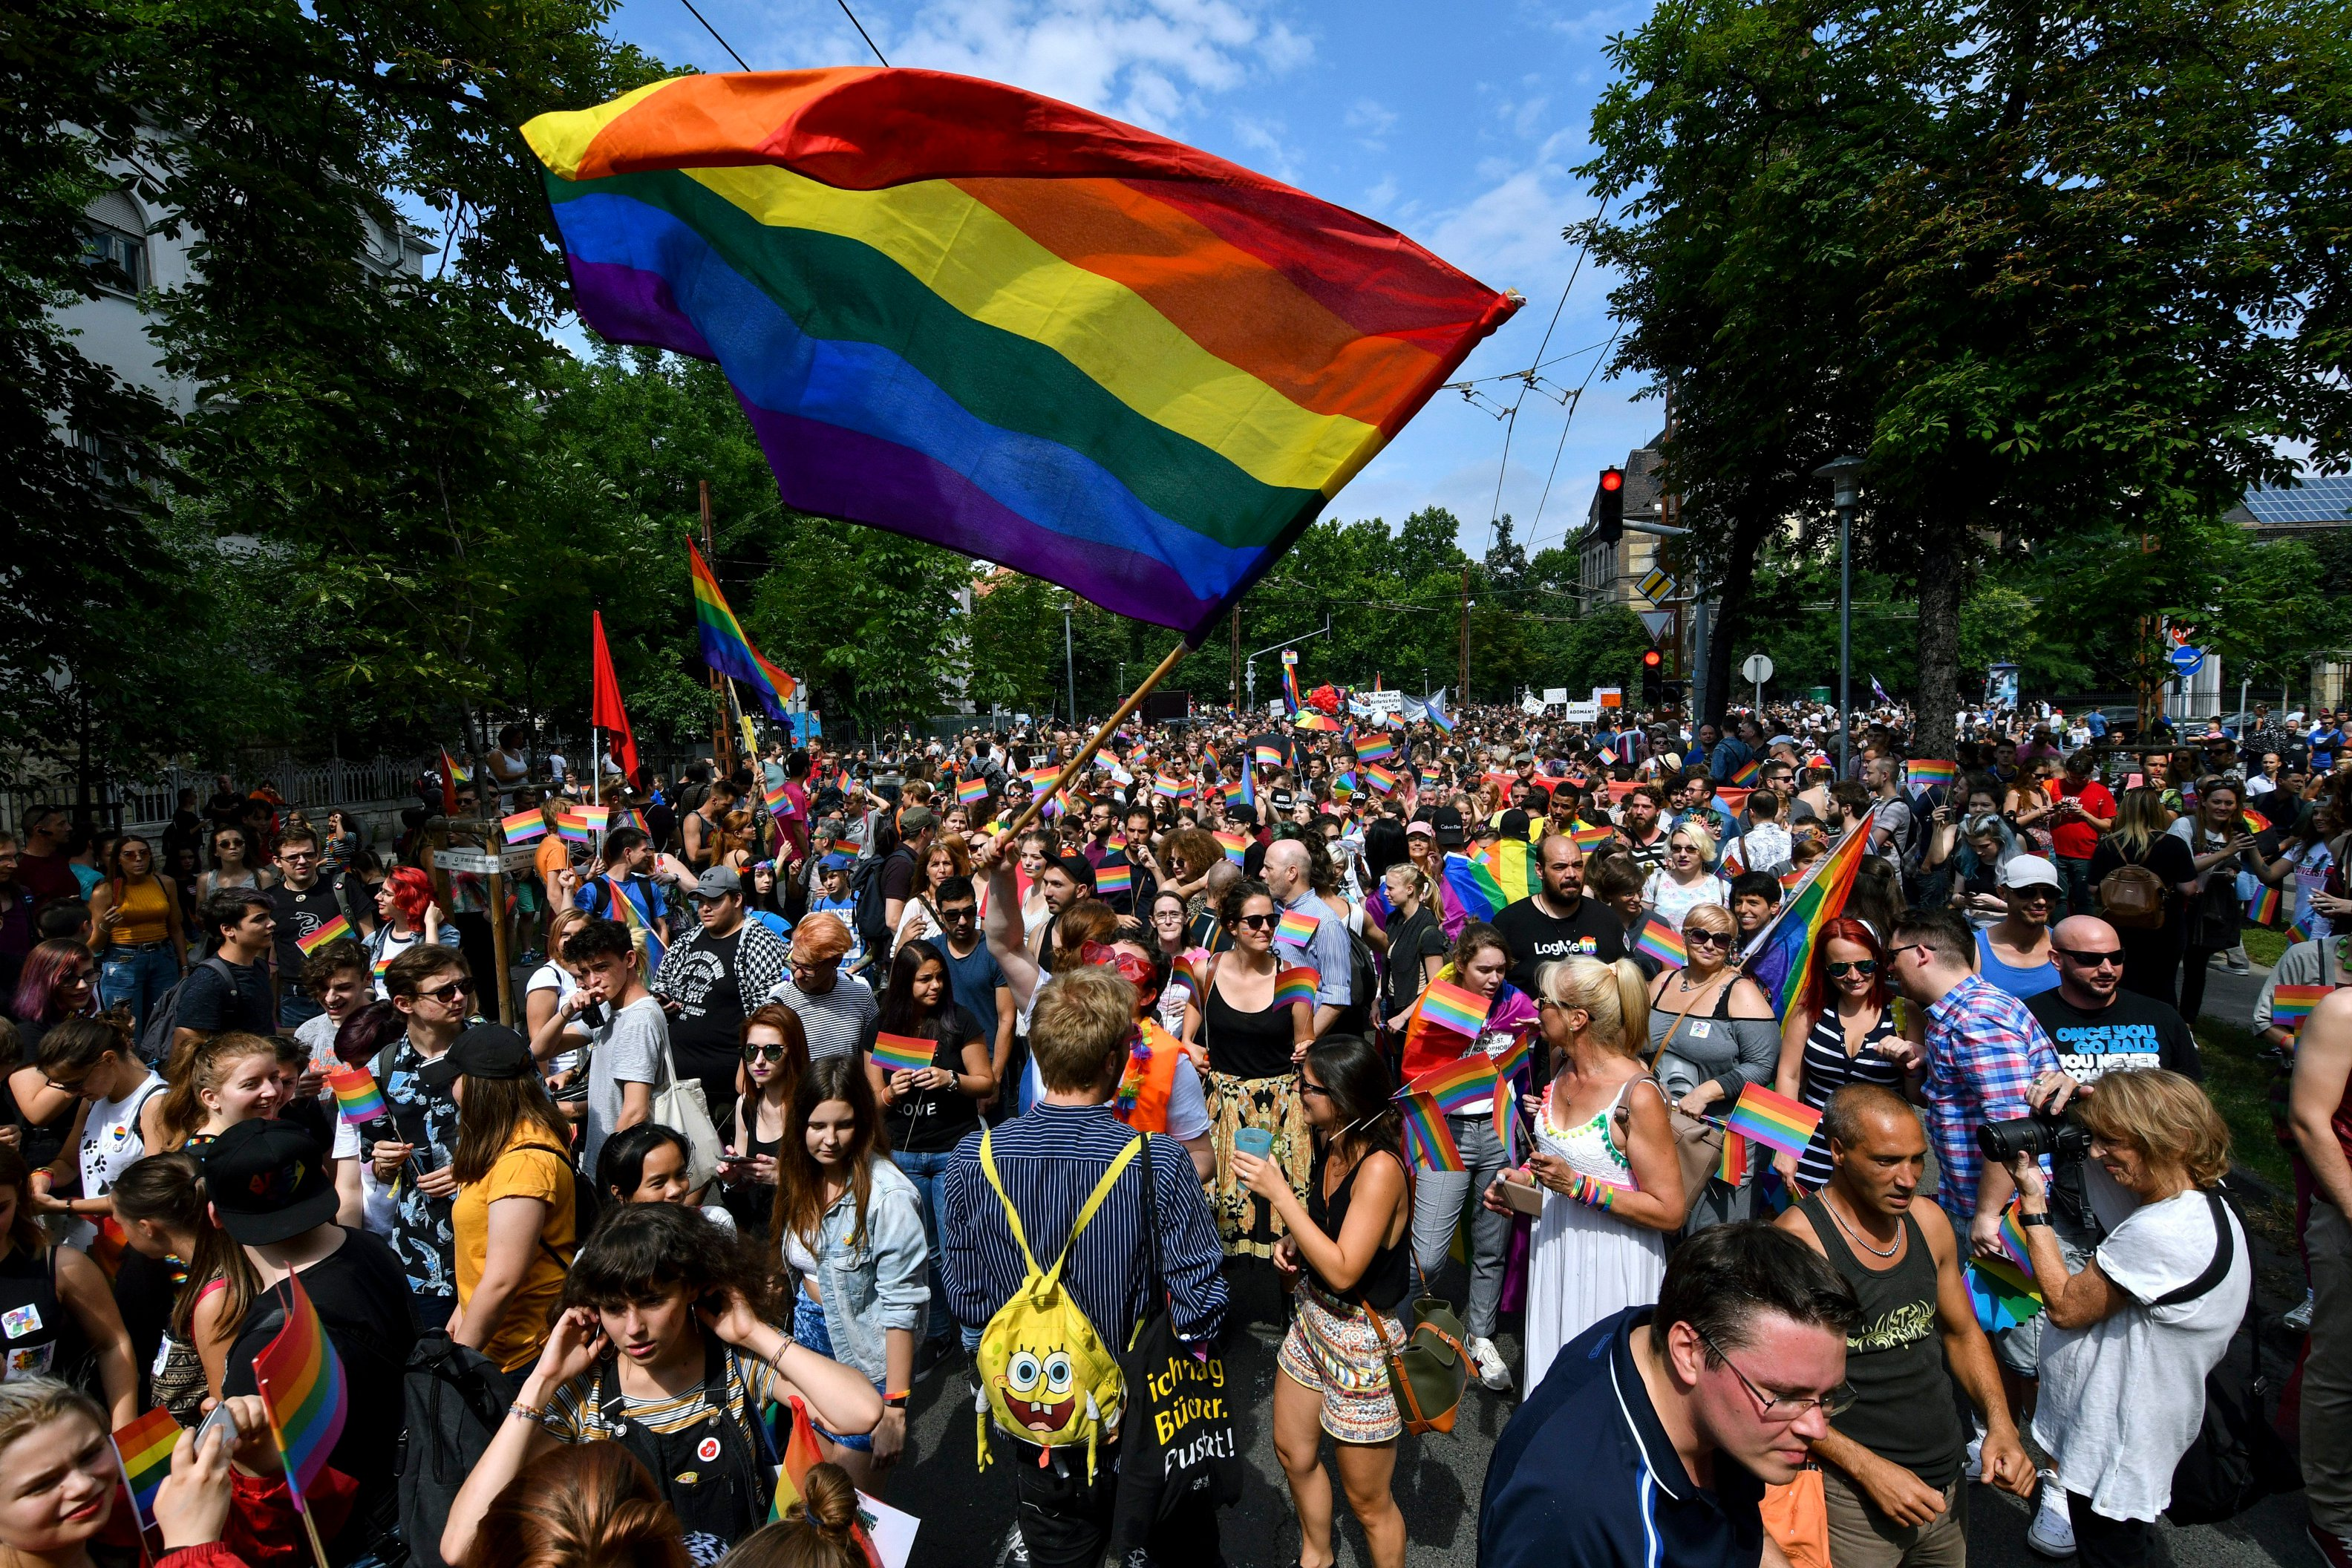 Police Plan To Fence Off Budapest Pride Parade